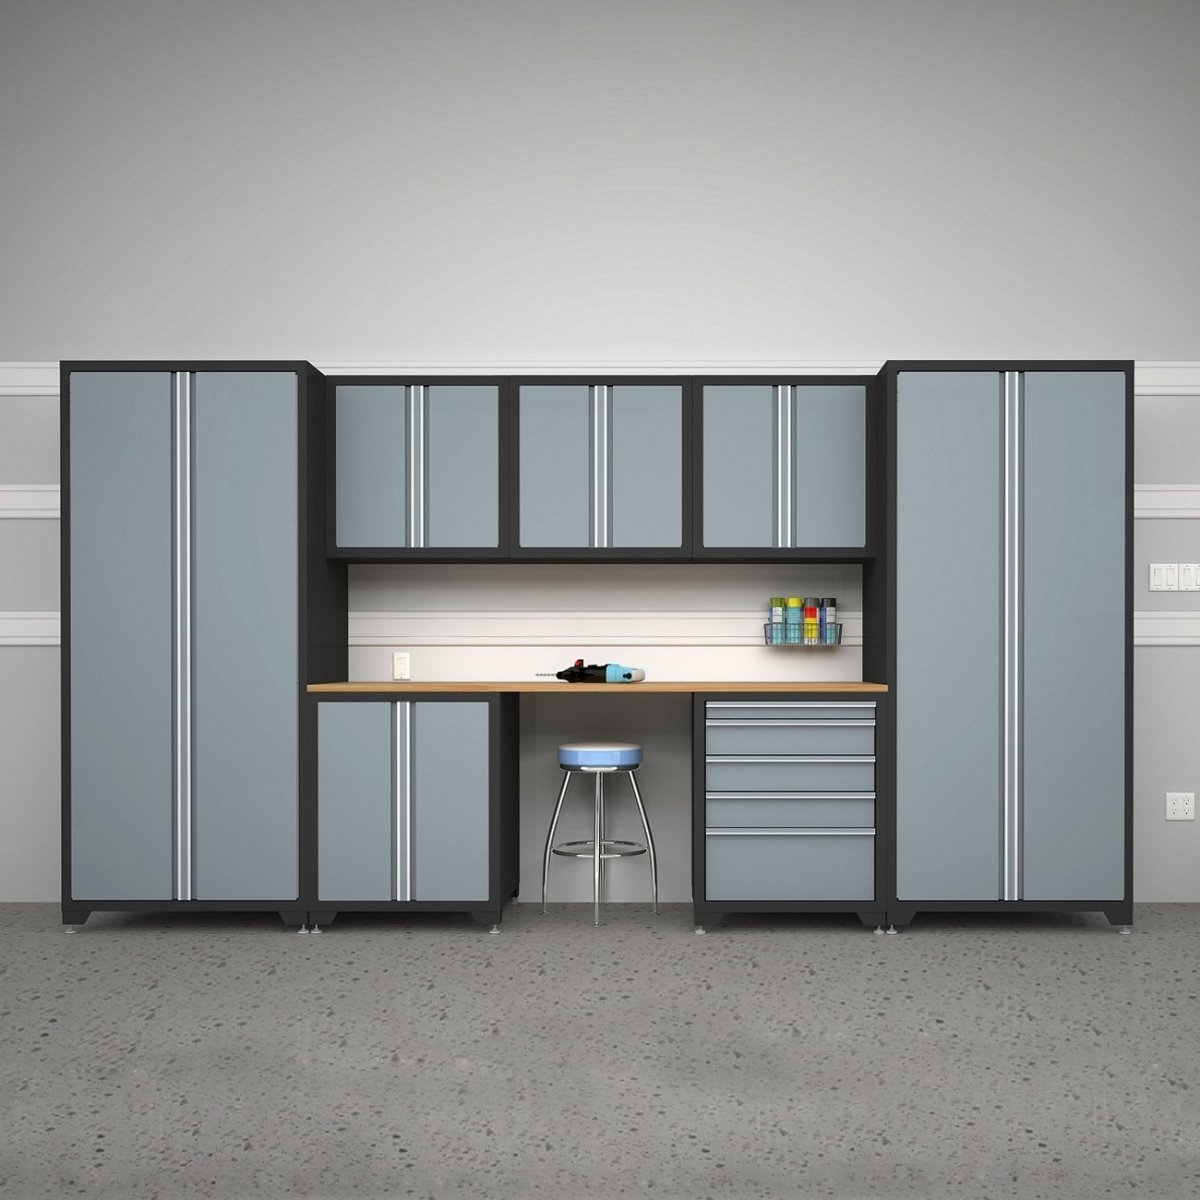 New Age Metal Storage Cabinets